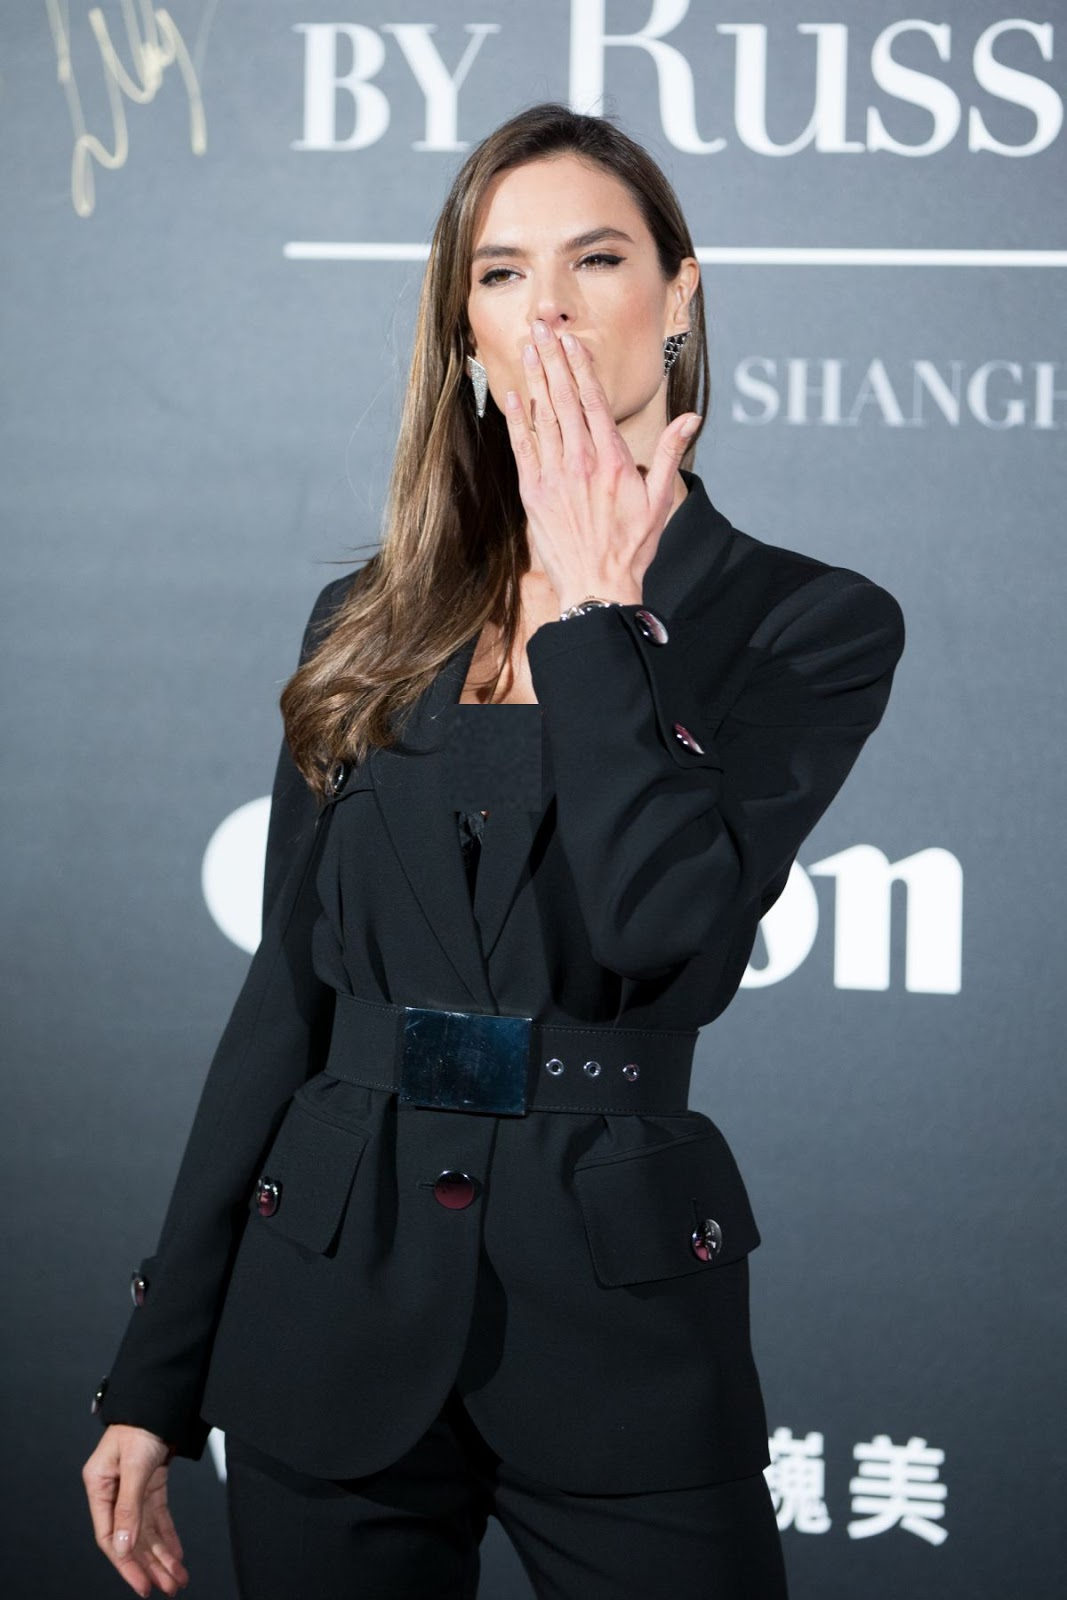 Alessandra Ambrosio at Mercedes-Benz Backstage Secrets by Russell James Book Launch and Shanghai Exhibition Opening Party